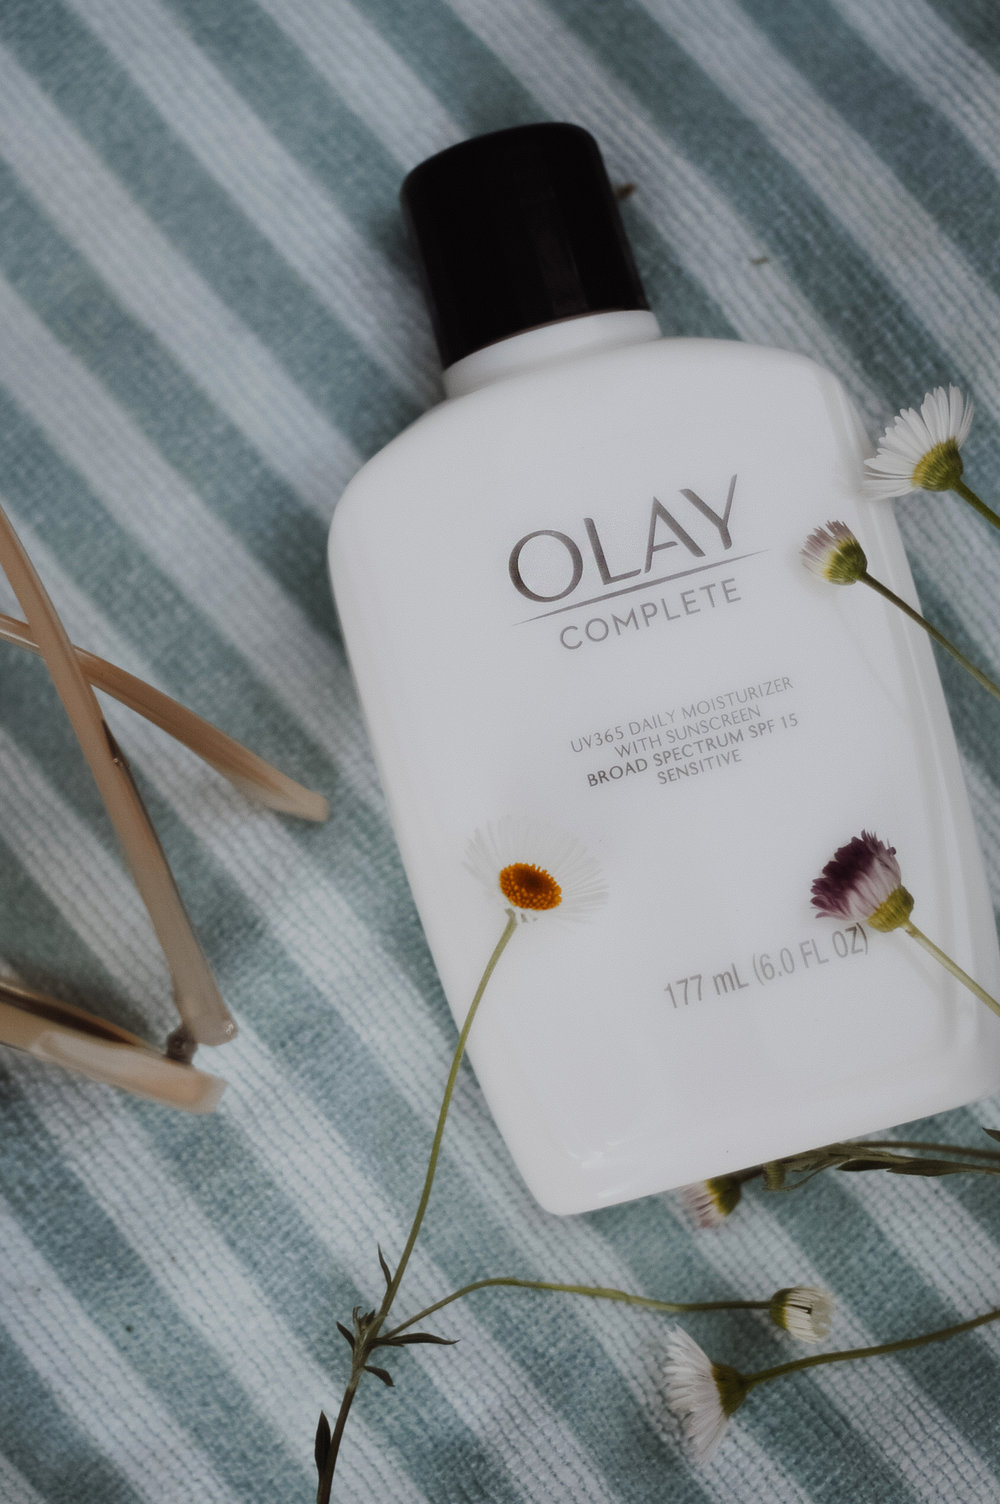 Olay SPF moisturizer blogger review via. Birdie Shoots